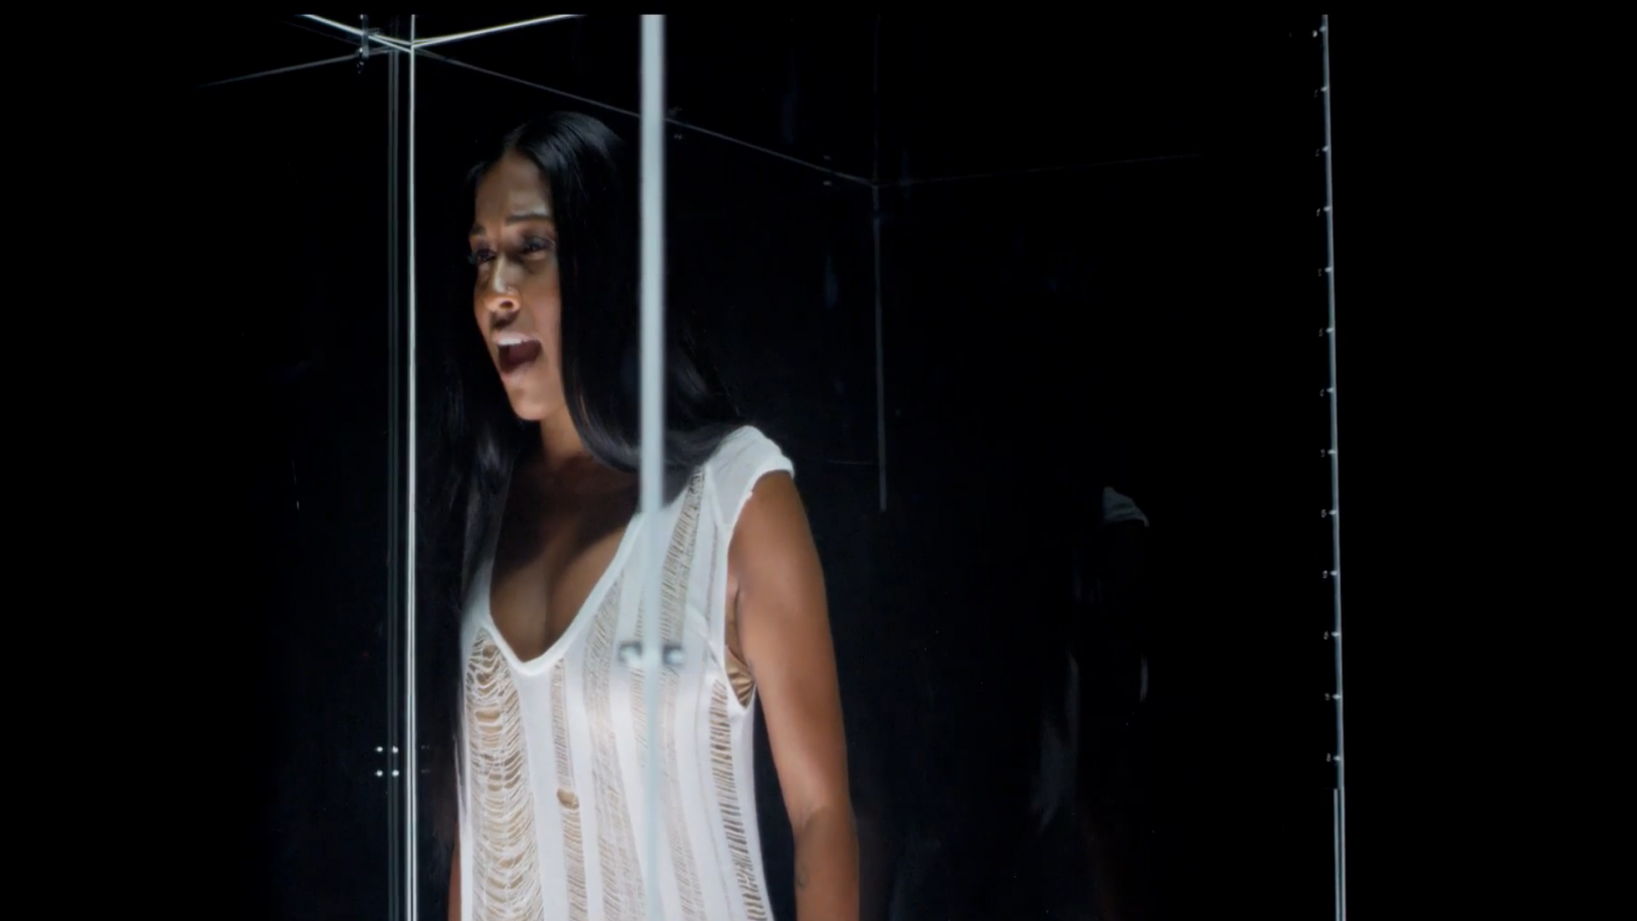 Melanie Fiona Addresses Domestic Violence, Police Brutality in New Video